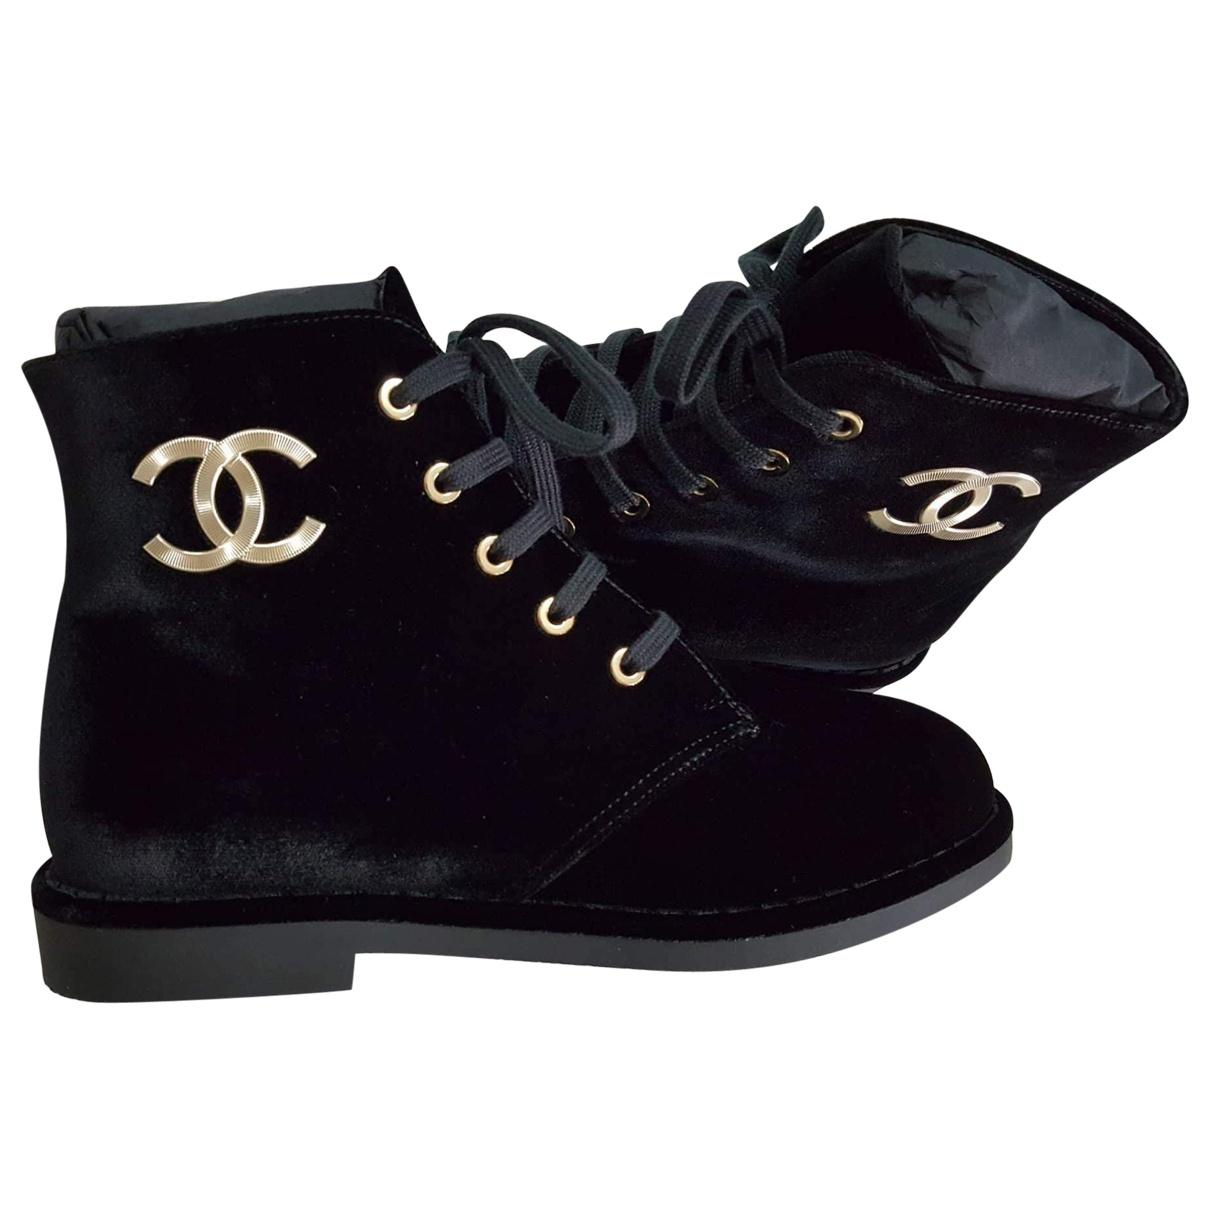 Chanel Pre-owned Velvet Ankle Boots in